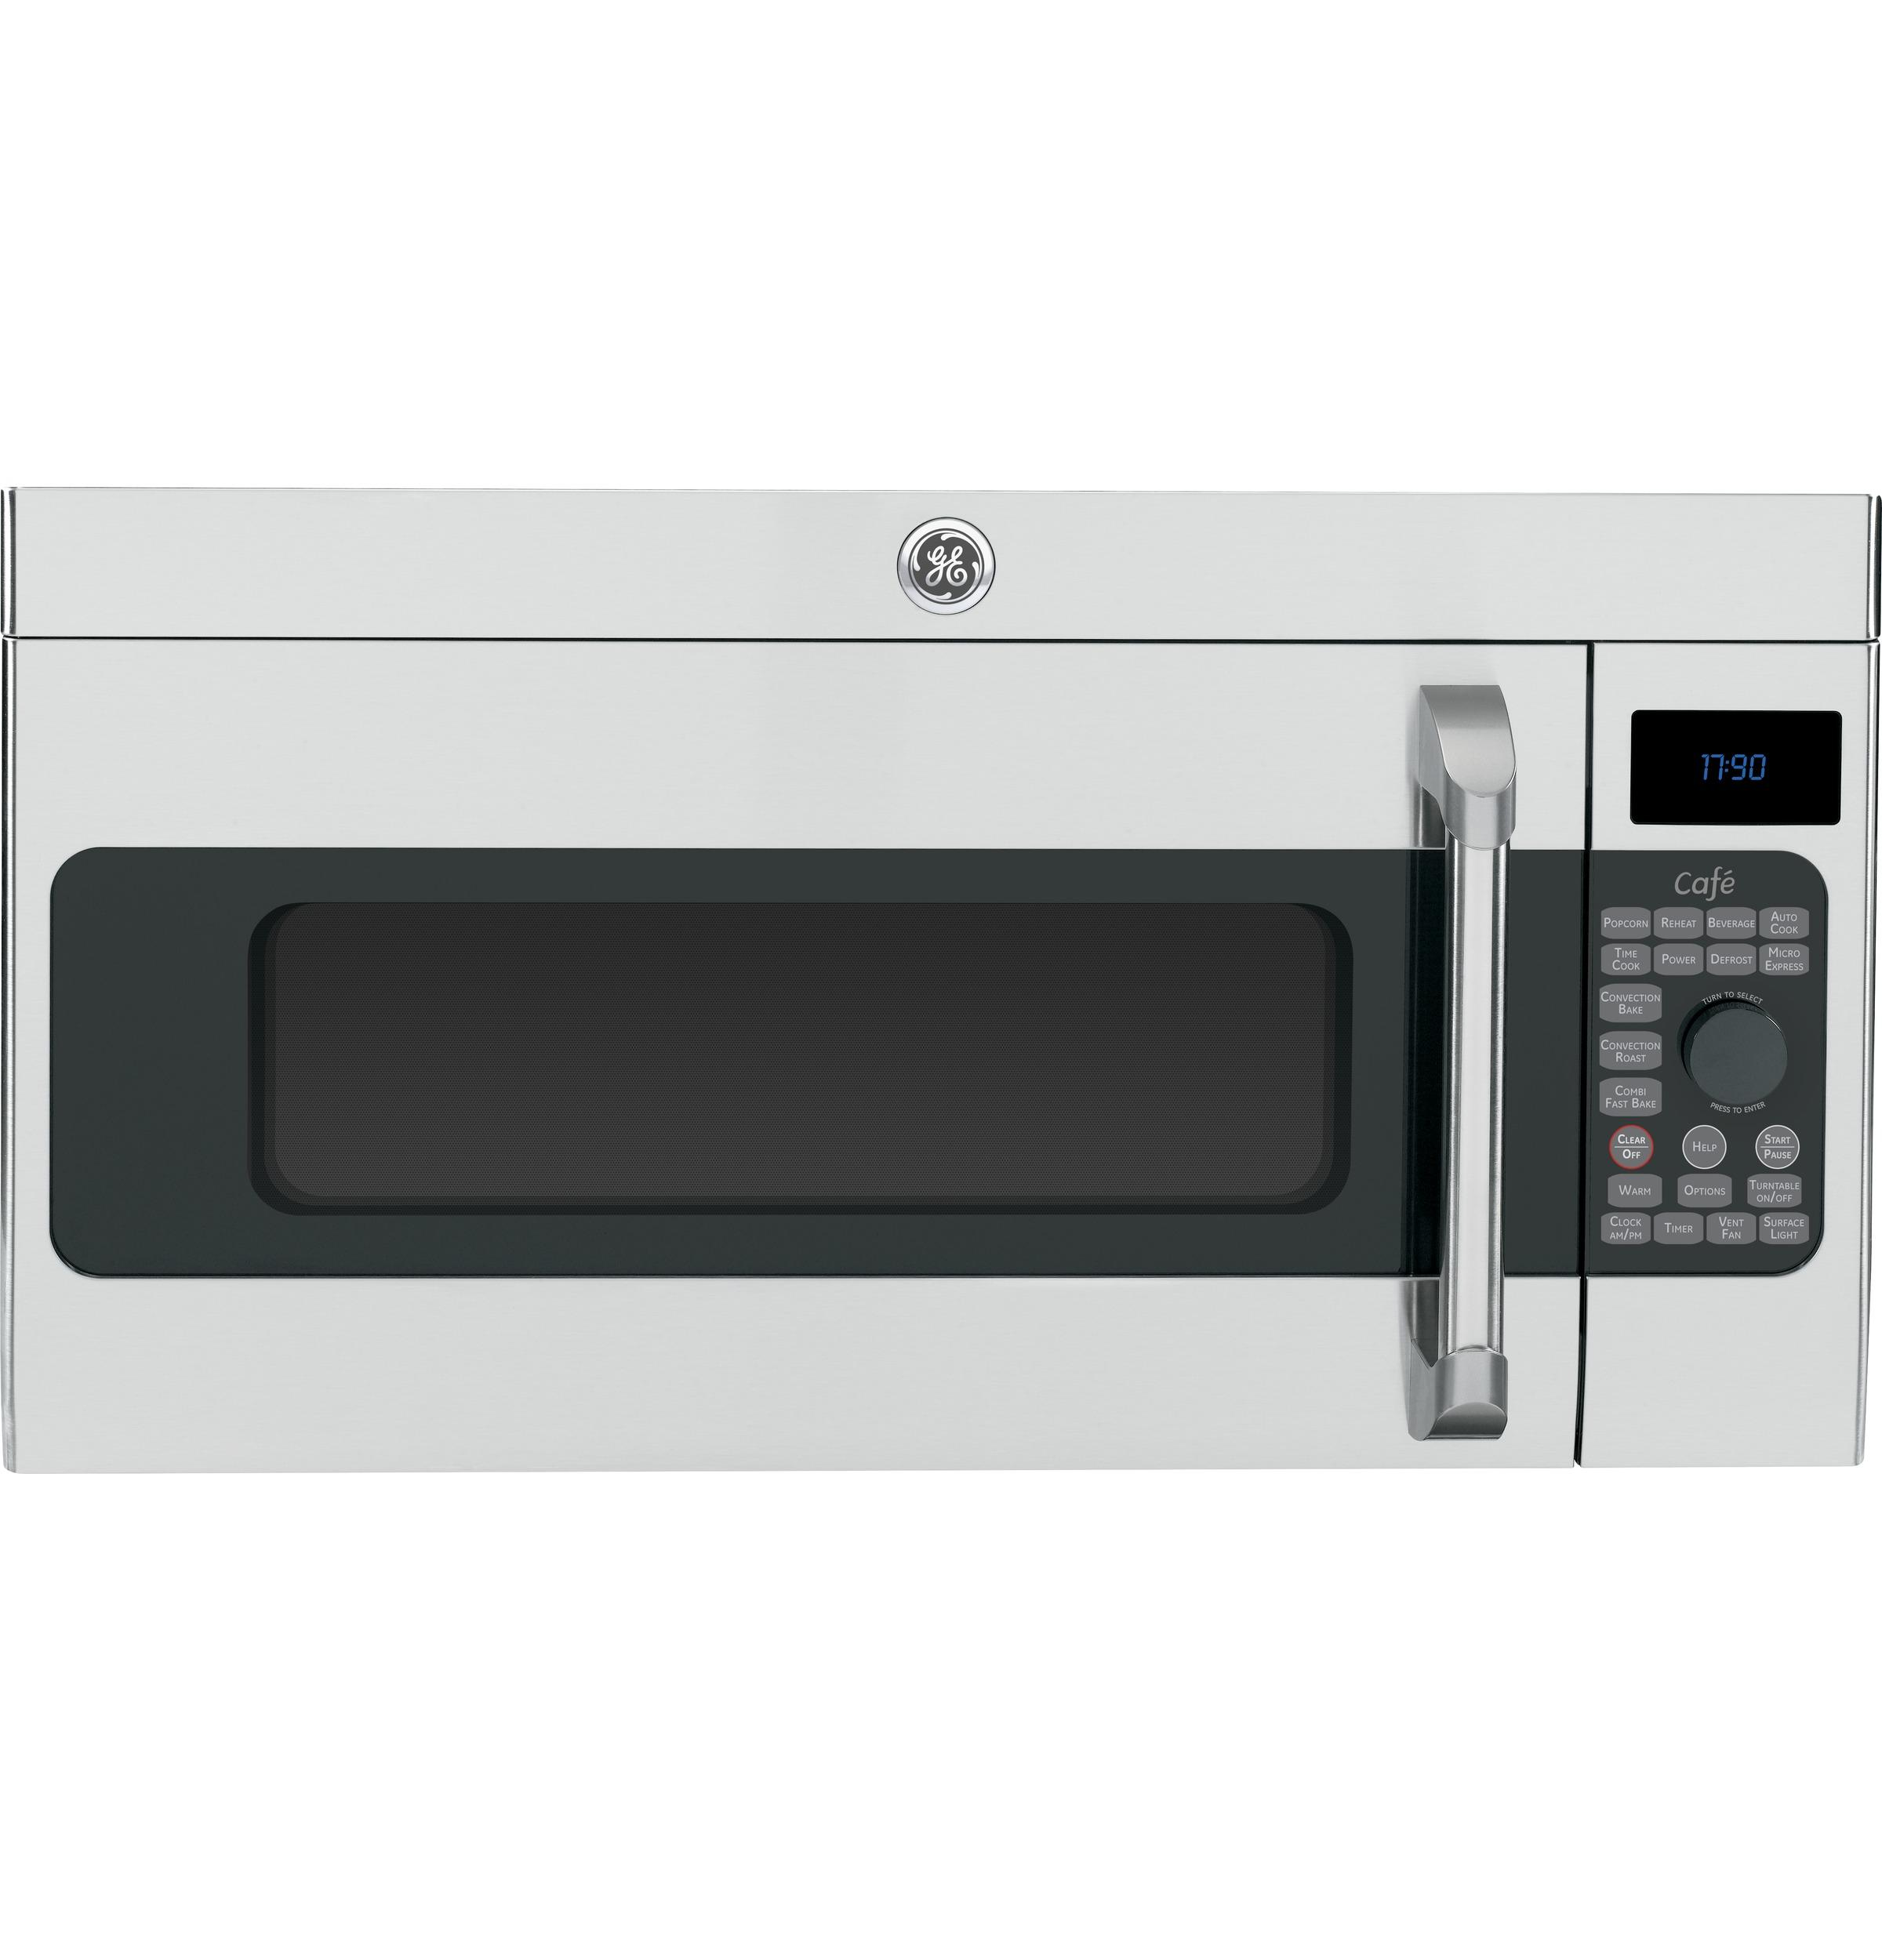 General Electric Countertop Convection Oven : GE JE1590 1000 WATTS CONVECTION MICROWAVE OVEN ? MICROWAVE OVENS